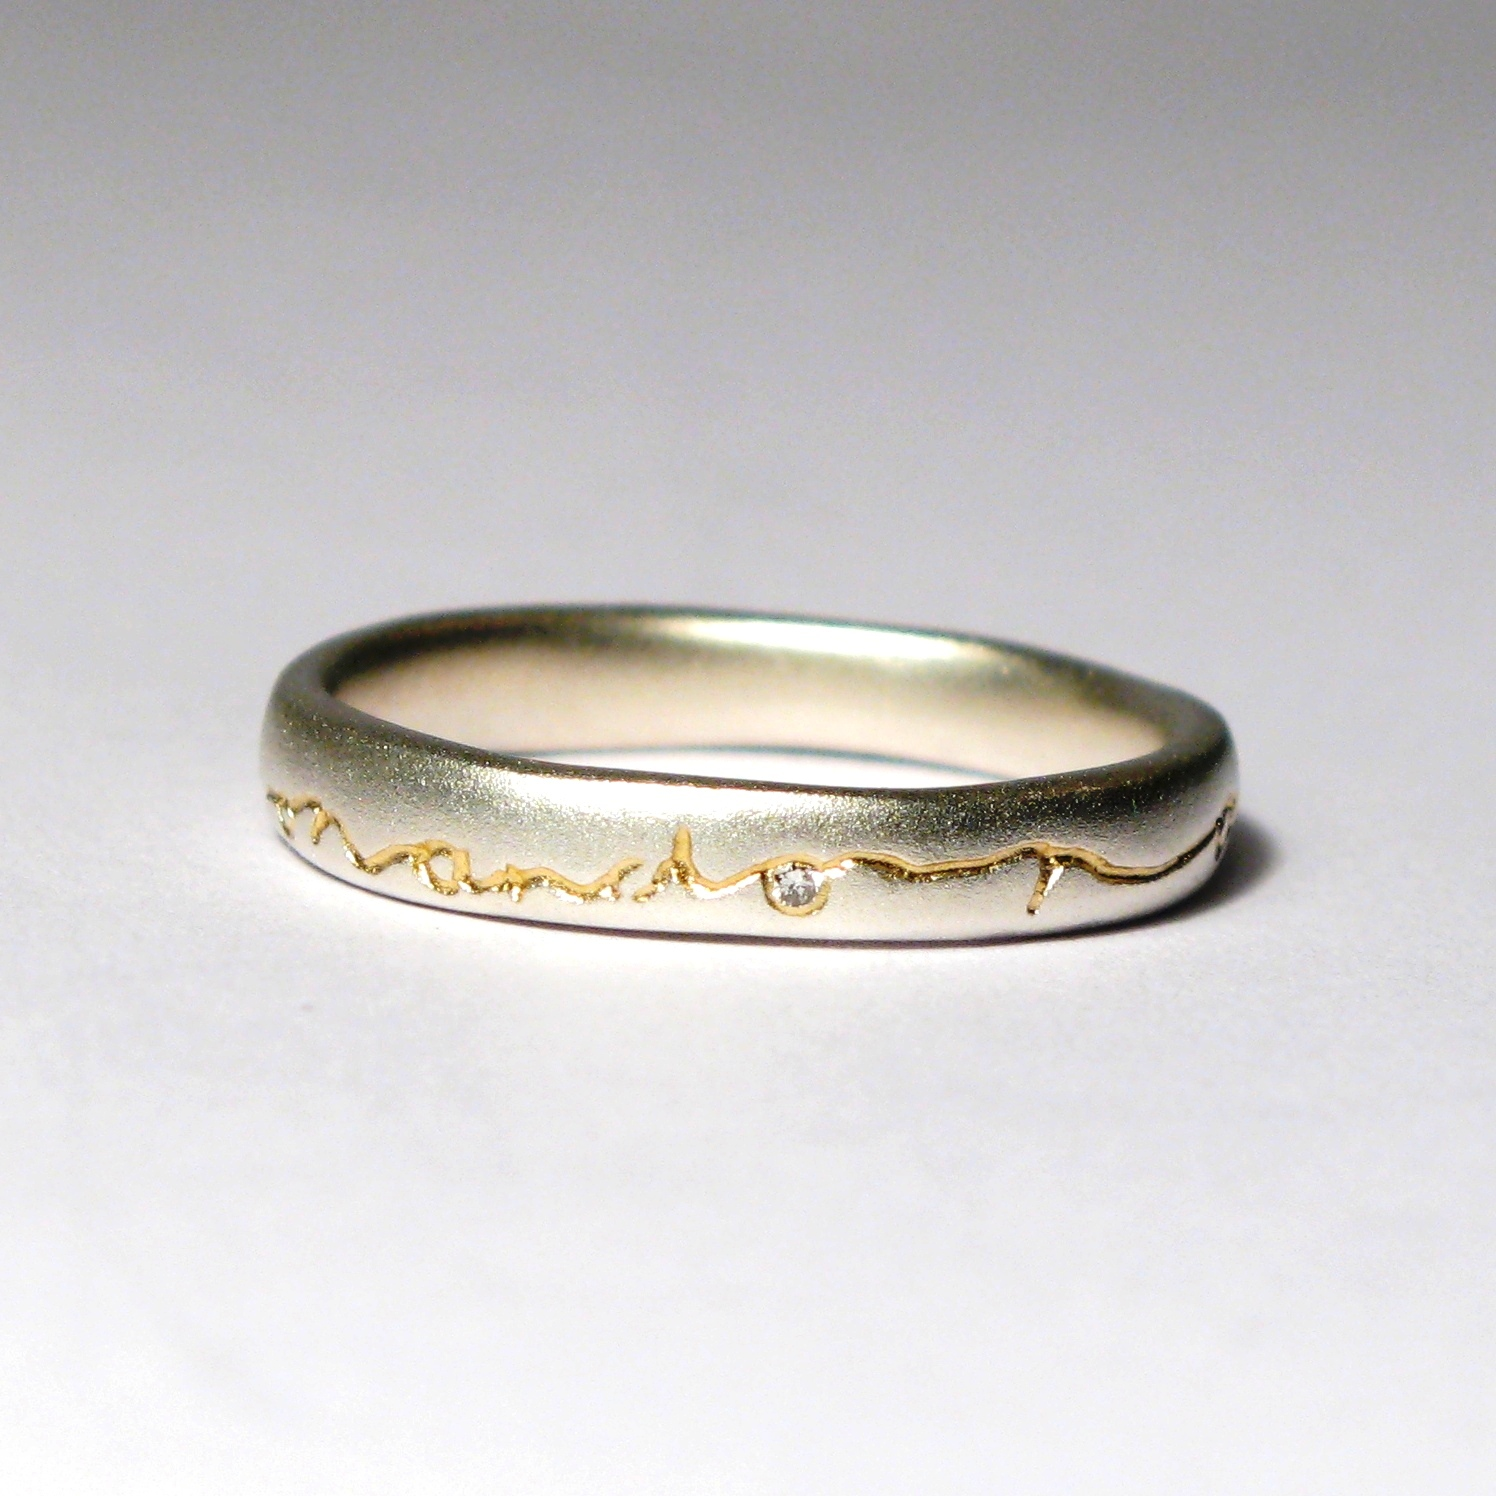 Silver ring with 22 carat gold etch and 0.01 carat diamond